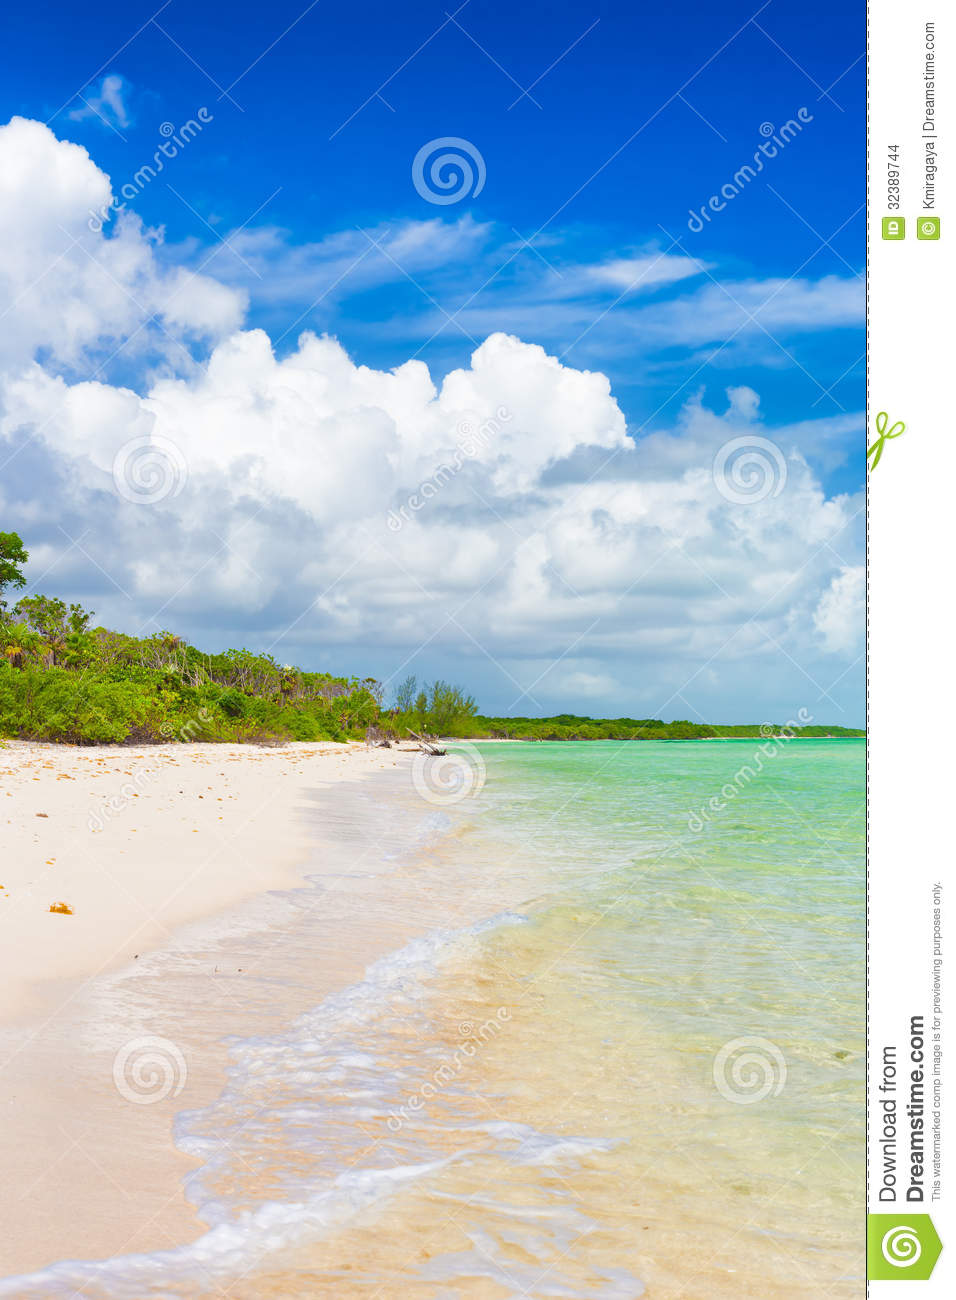 Vertical Image Of A Deserted Tropical Beach At Coco Key In